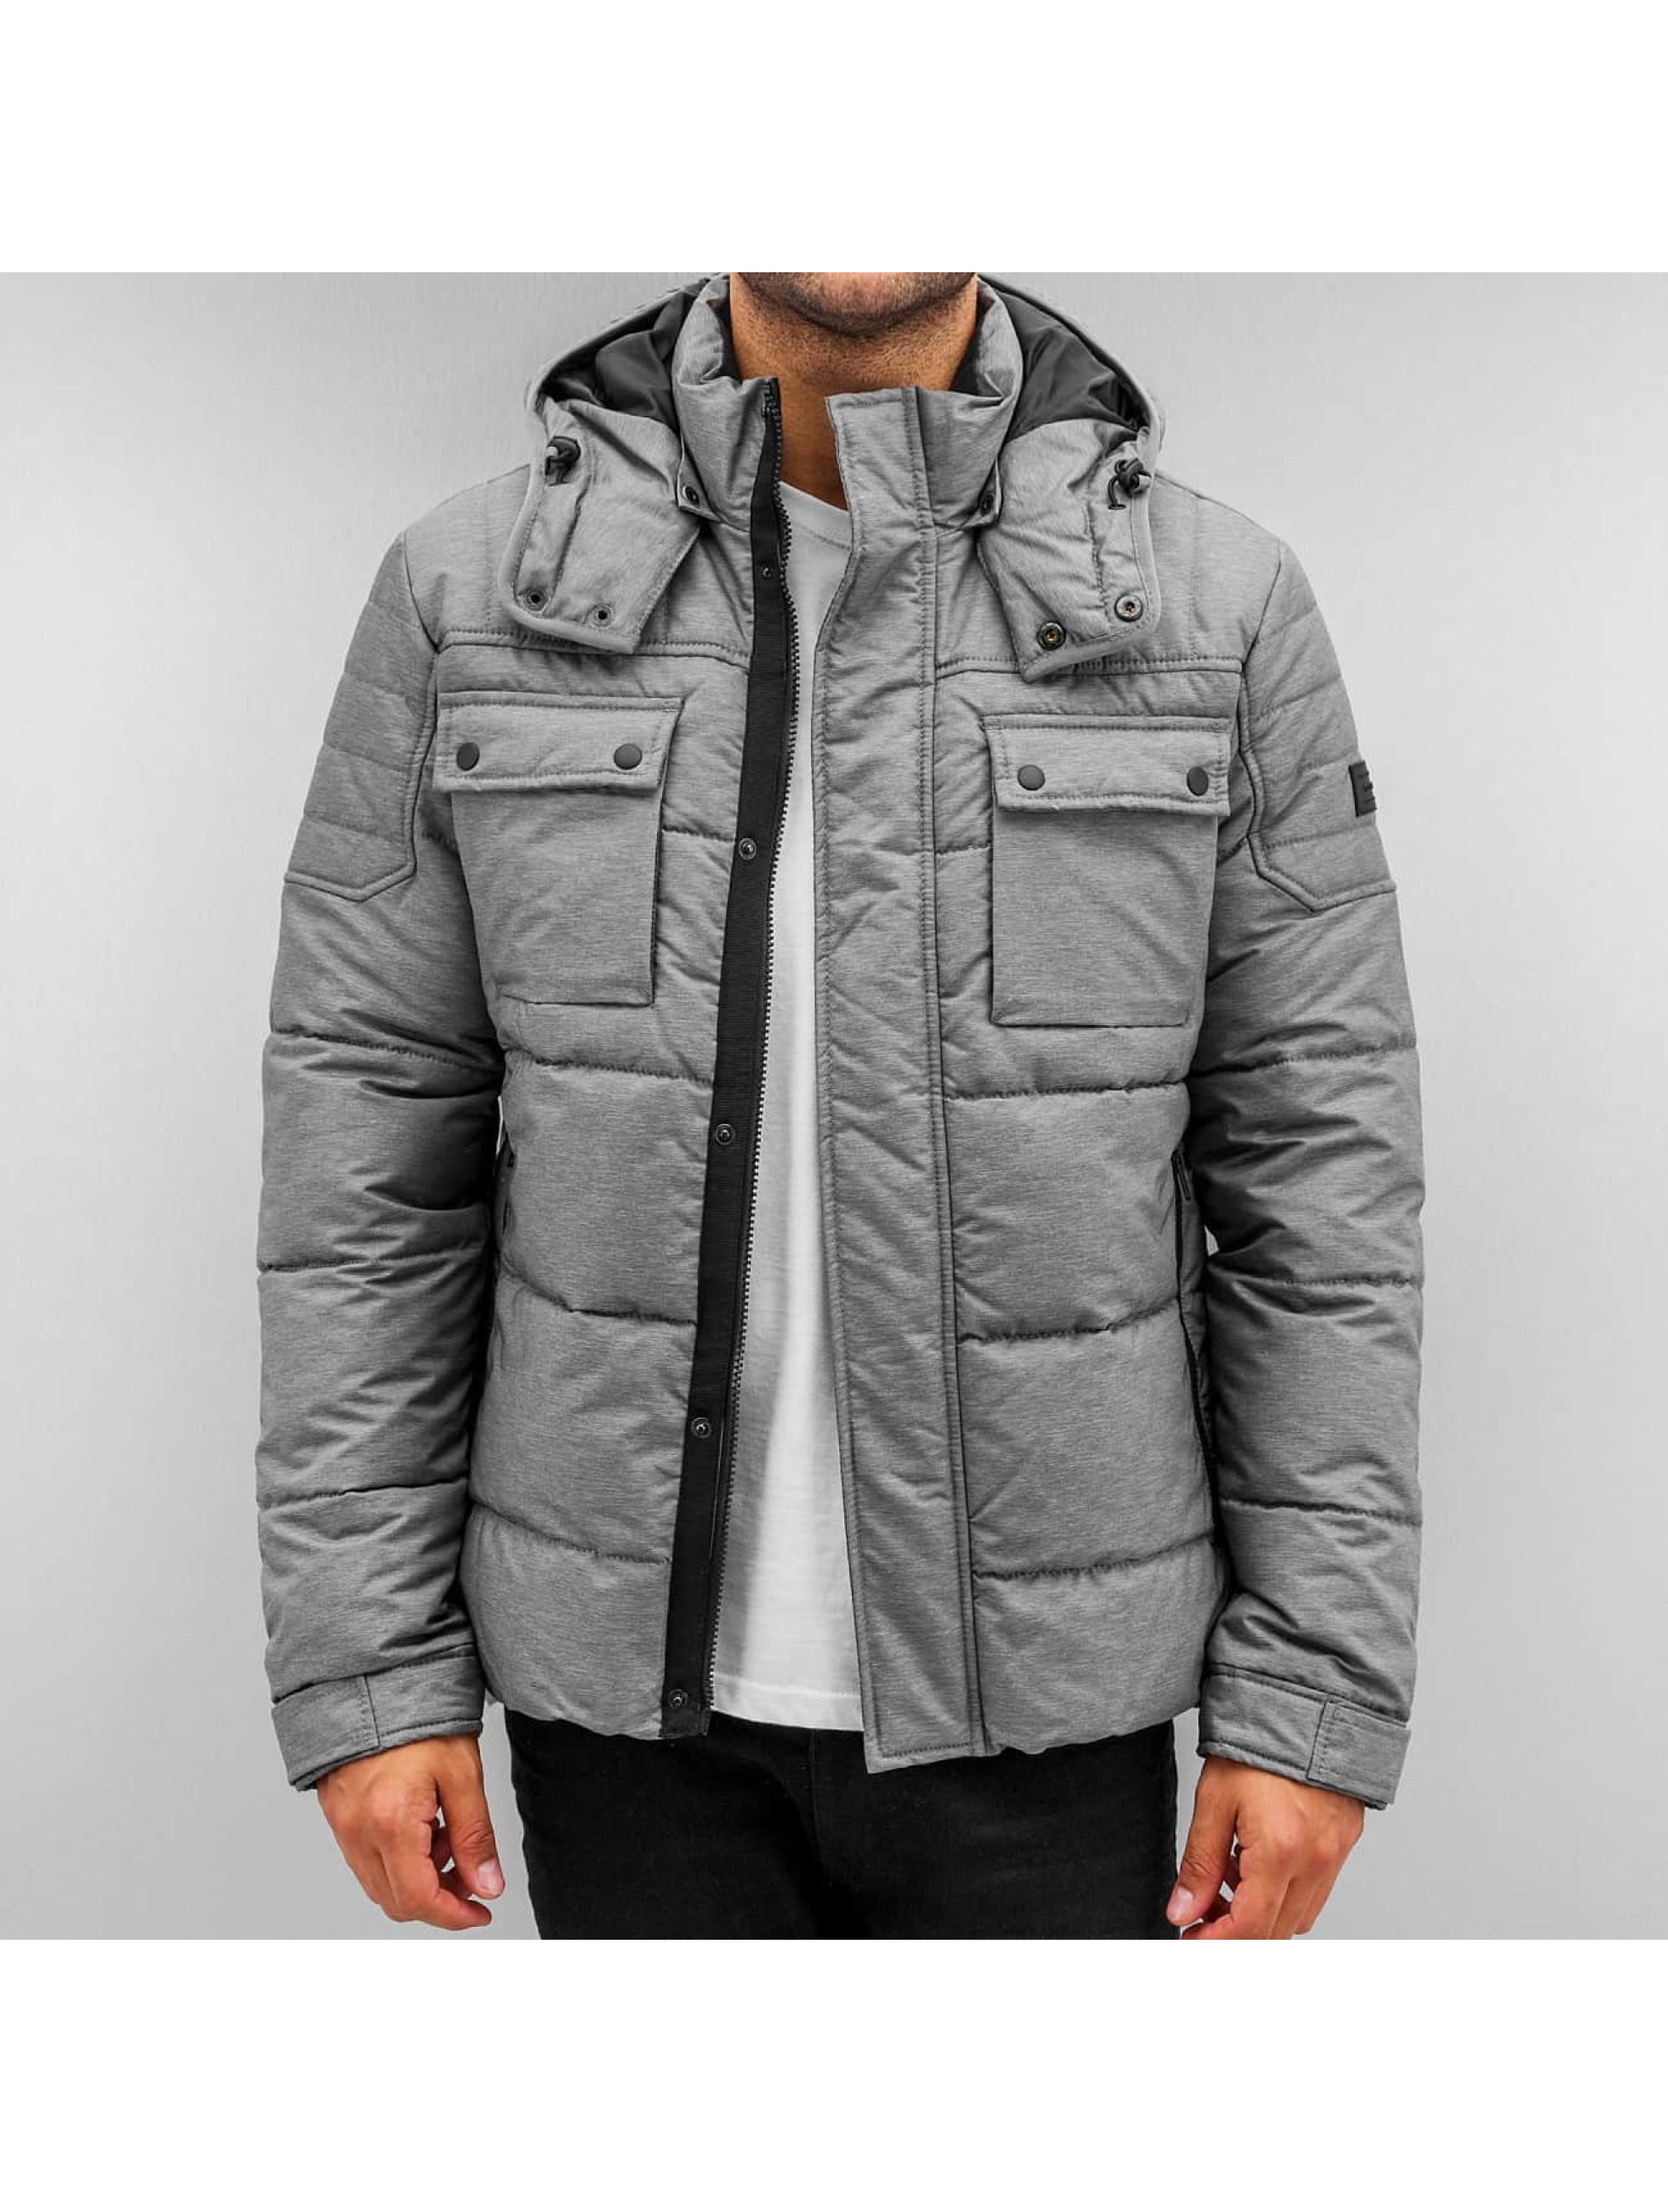 Jack and jones winterjacke blau